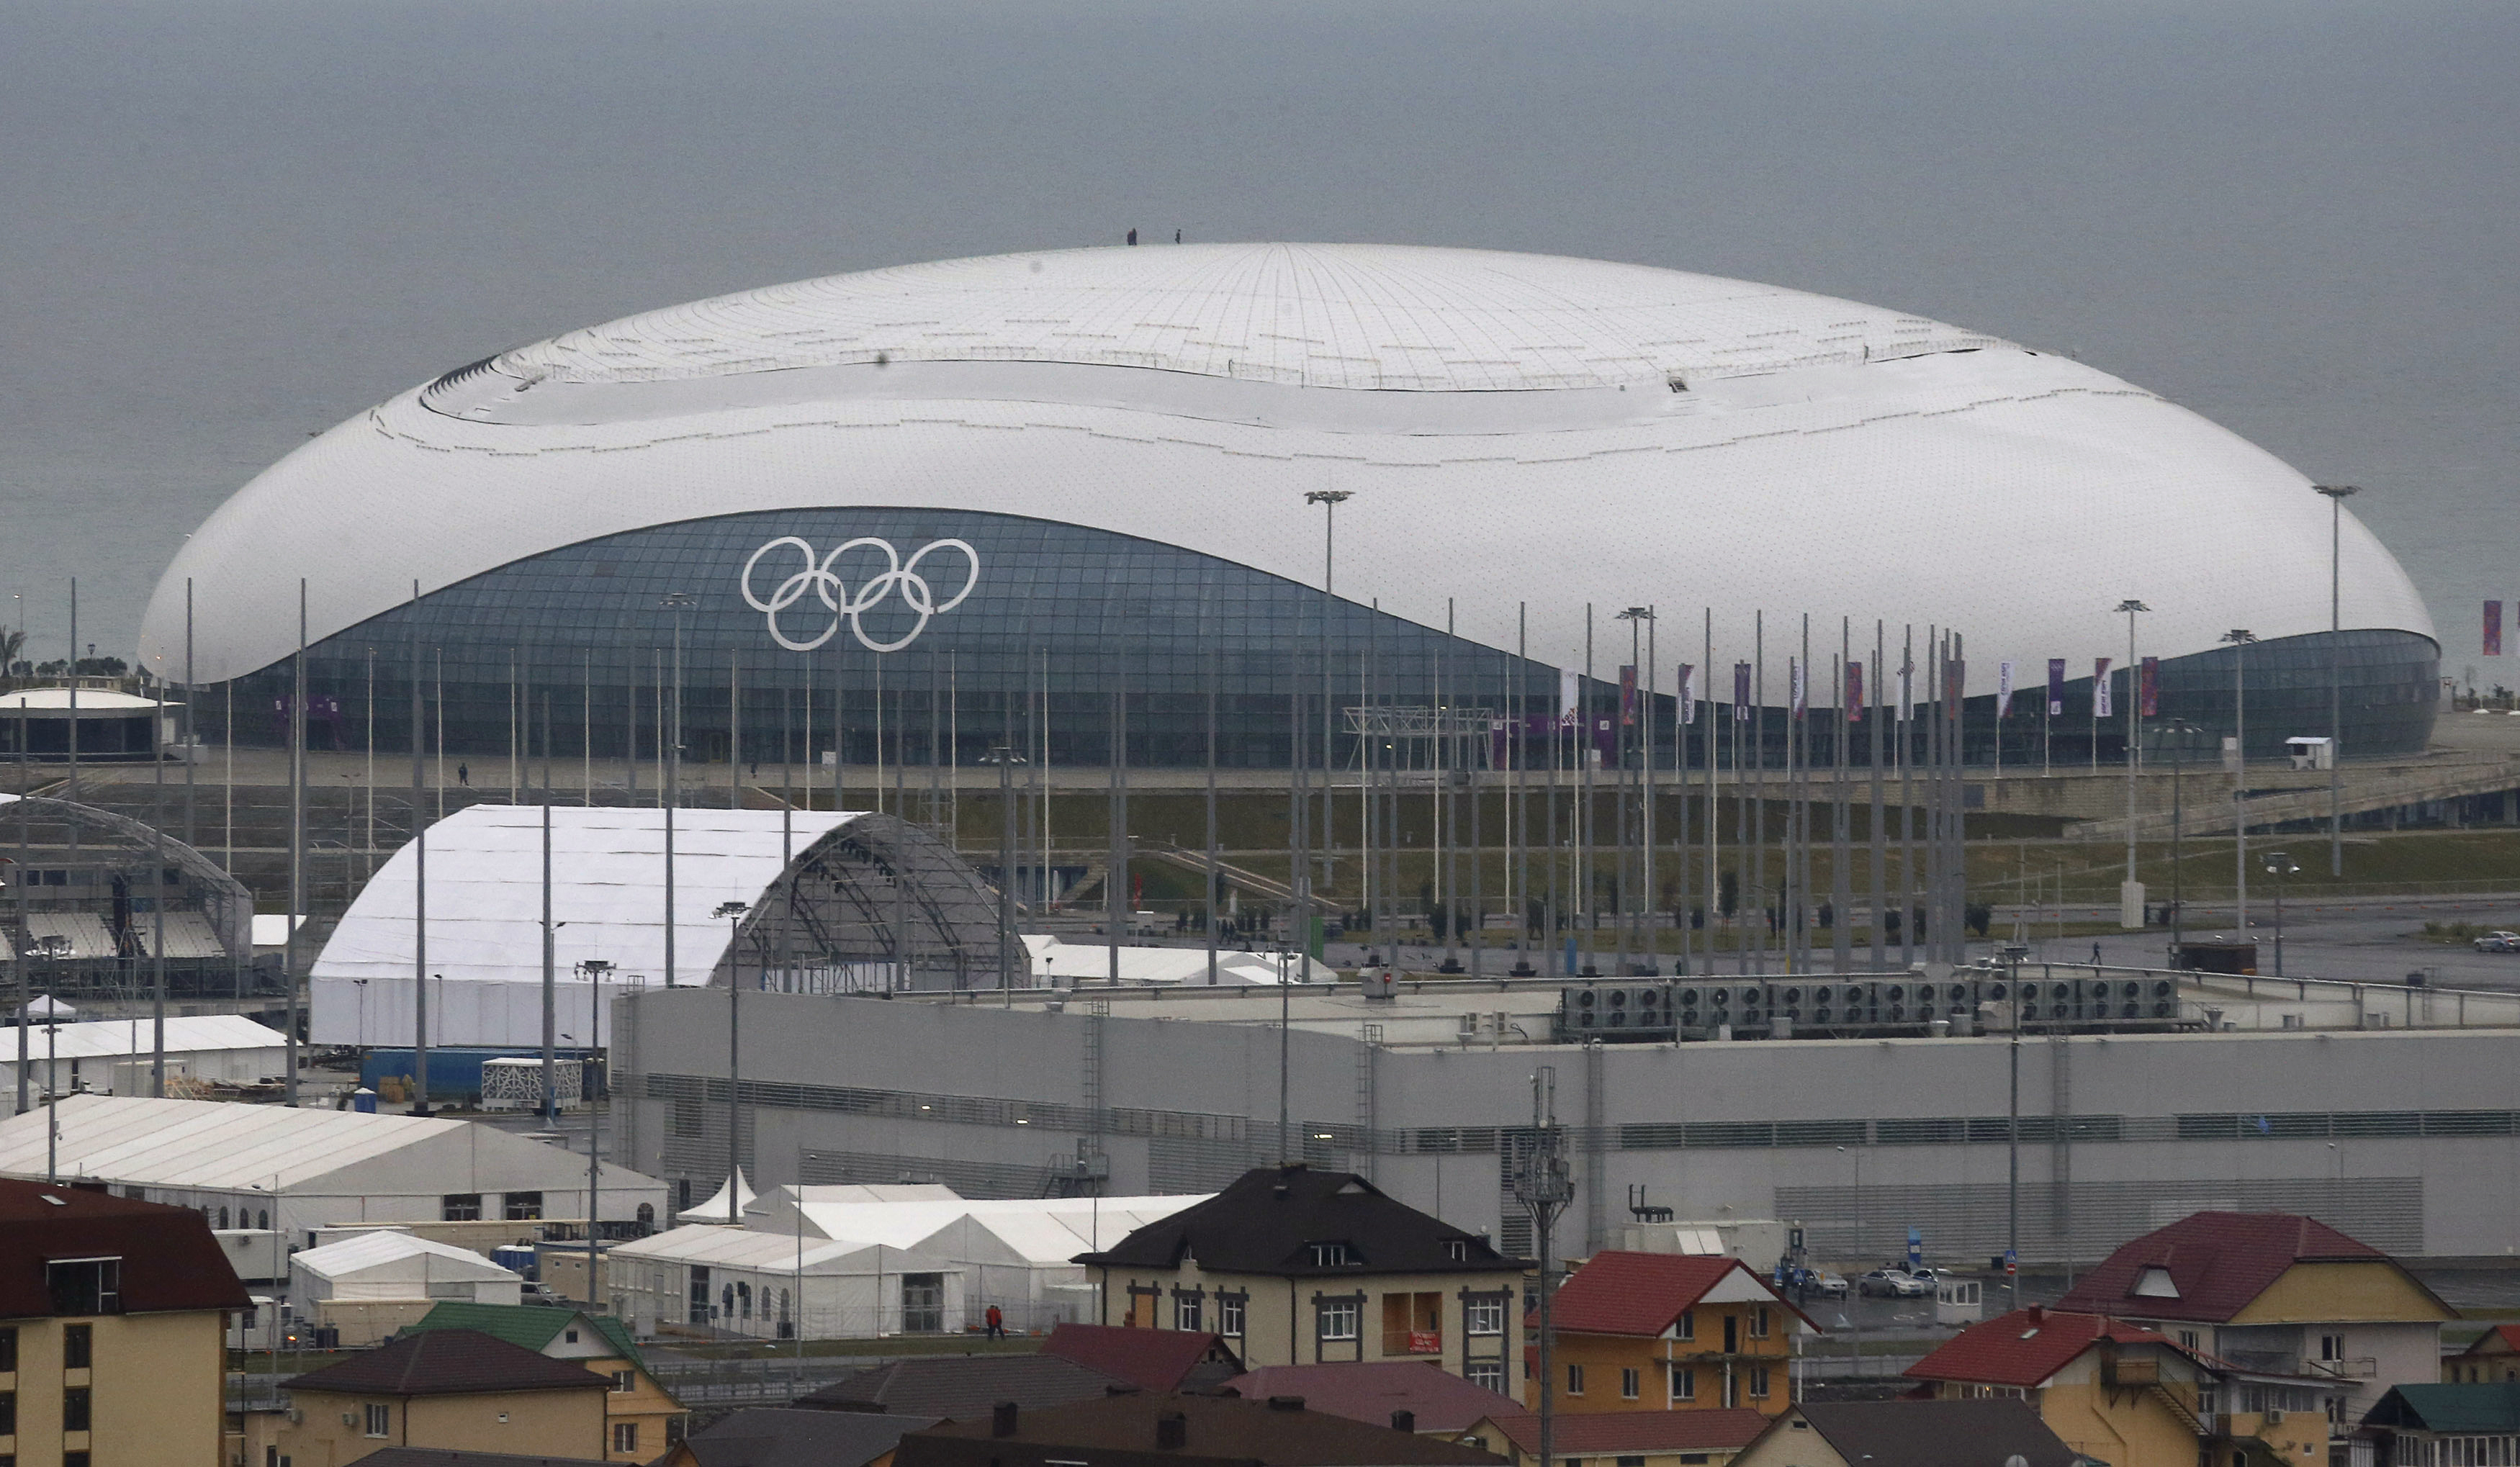 A view of the Bolshoi Ice Palace in the Adler district of Sochi. The building is the hockey venue for the Sochi 2014 Olympics, which begin on February 7th. After the Olympics, it will serve as a sports arena and concert venue.